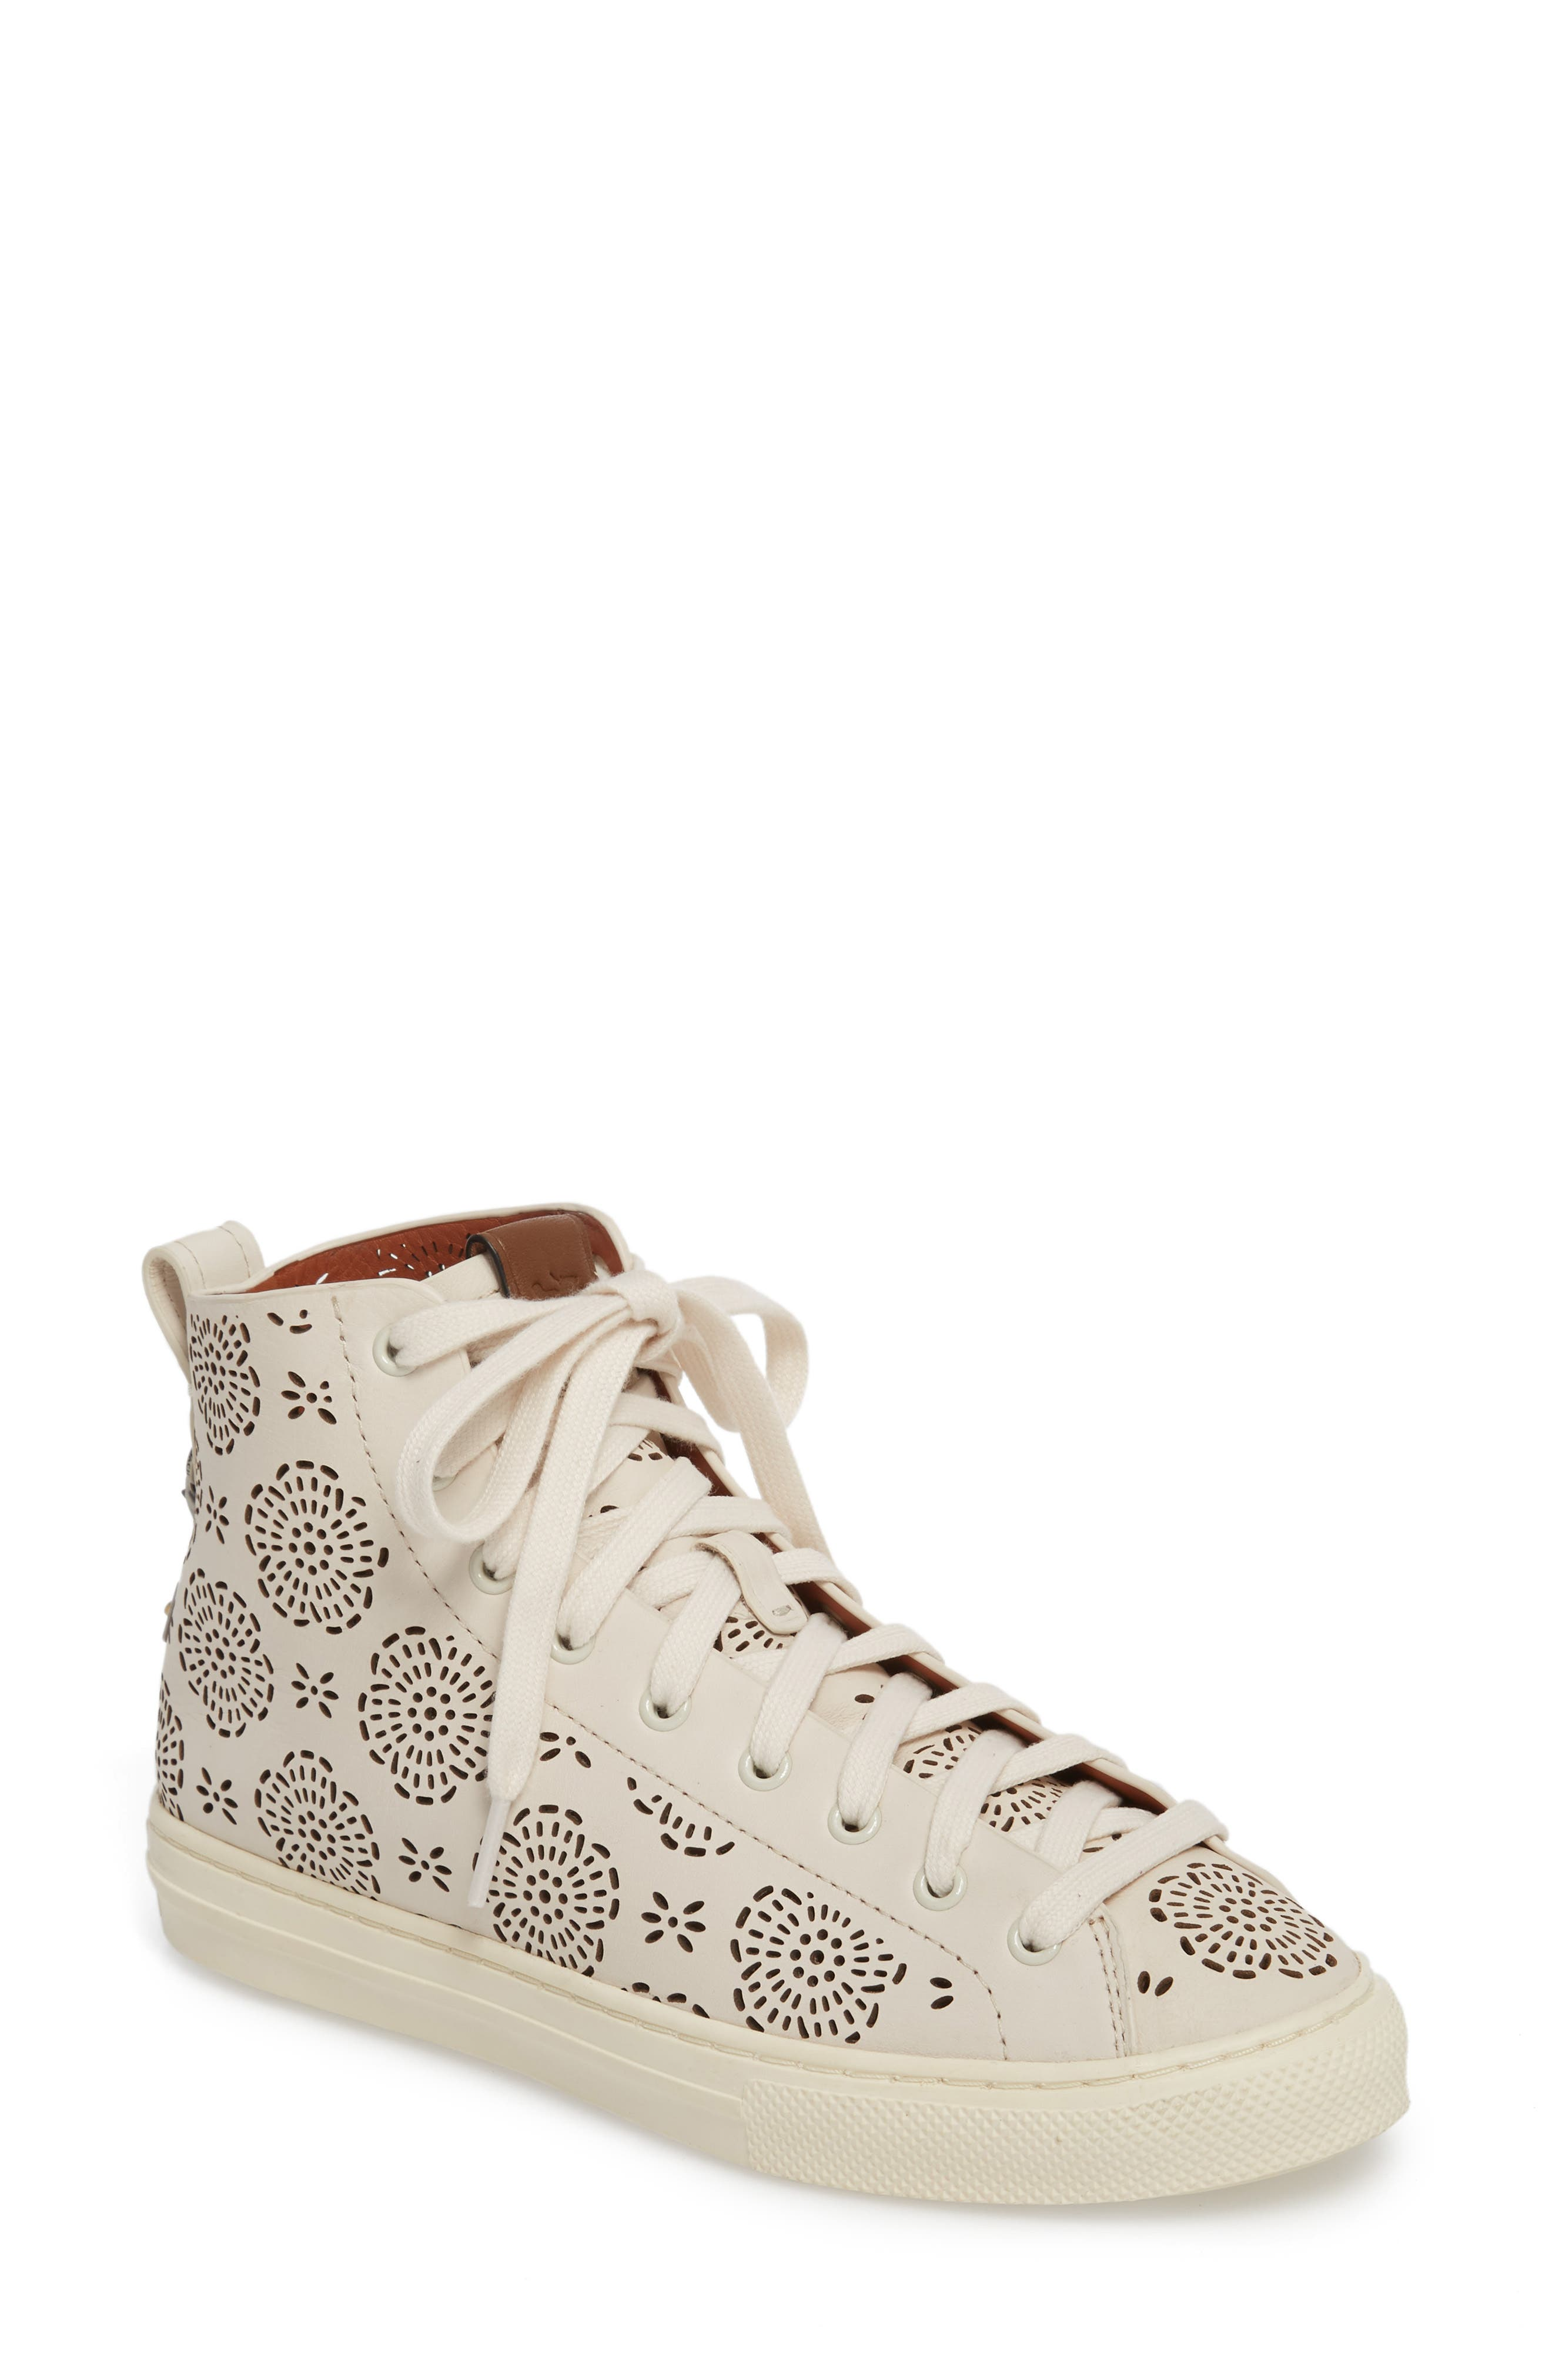 Tea Rose Cutout High Top Sneaker,                             Main thumbnail 1, color,                             115